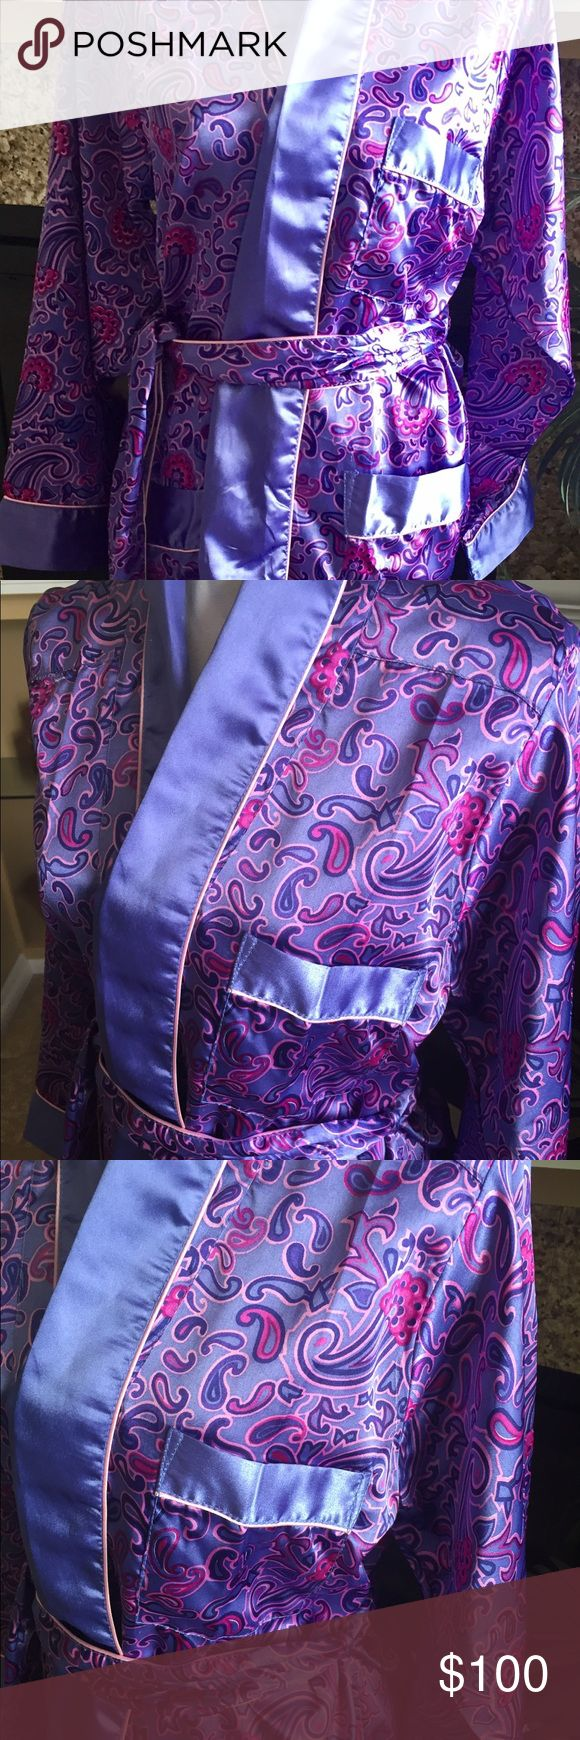 """Paisley Satin Feel Wrap Robe """"Fernando Sanchez Red"""" Stunning Paisley Print Long Robe with Banded Solid Blue. Poly blend fabric feels like Satin. Very pretty. Fernando Sanchez Red Intimates & Sleepwear Robes"""